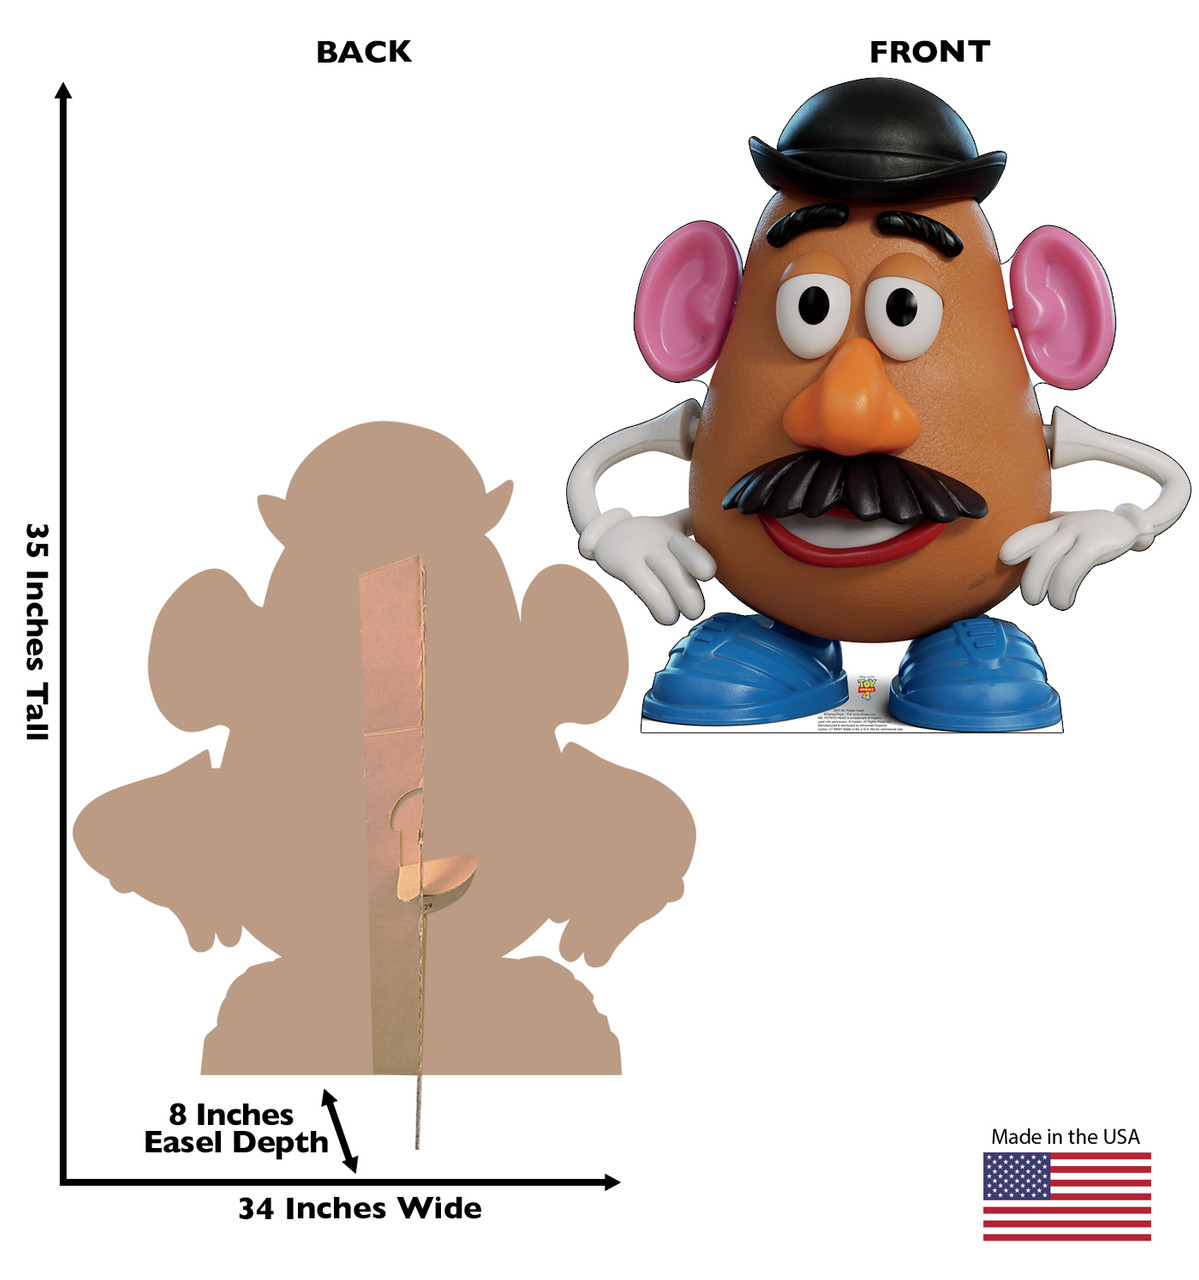 Mr. Potato Head - Toy Story 4 Cardboard Cutout Front and Back View